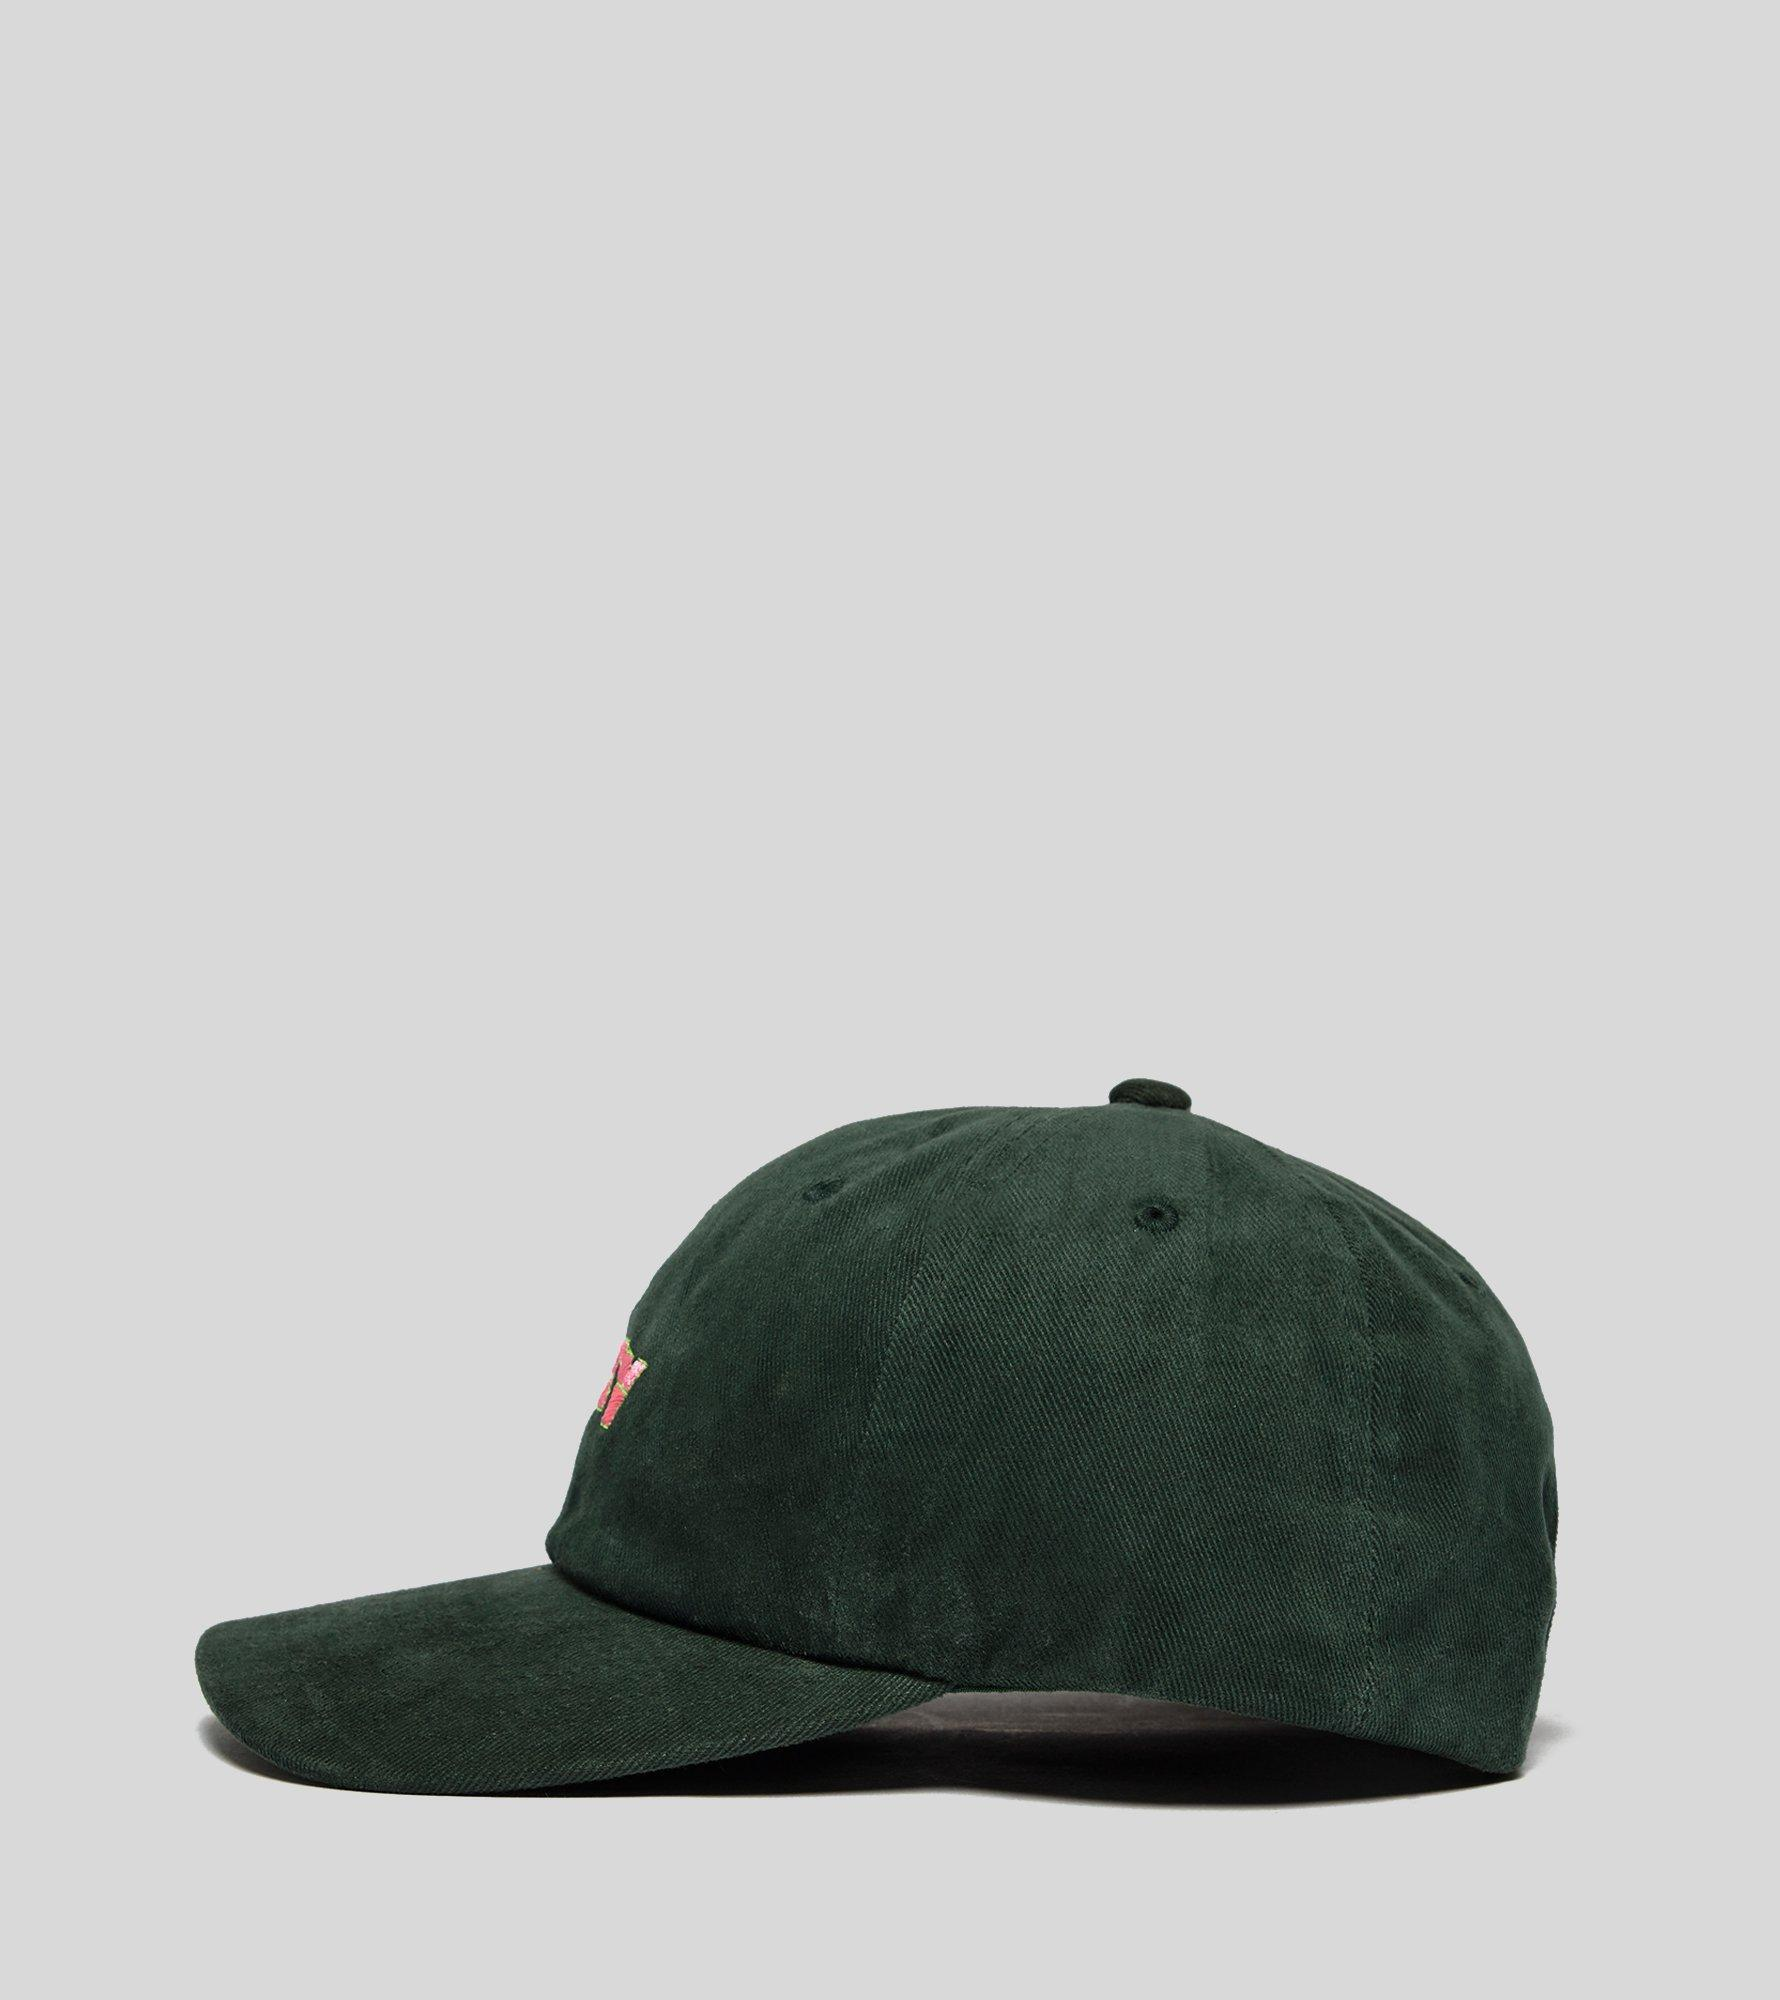 Lyst - Obey Ripped 6 Panel in Green for Men 1b4687e043af